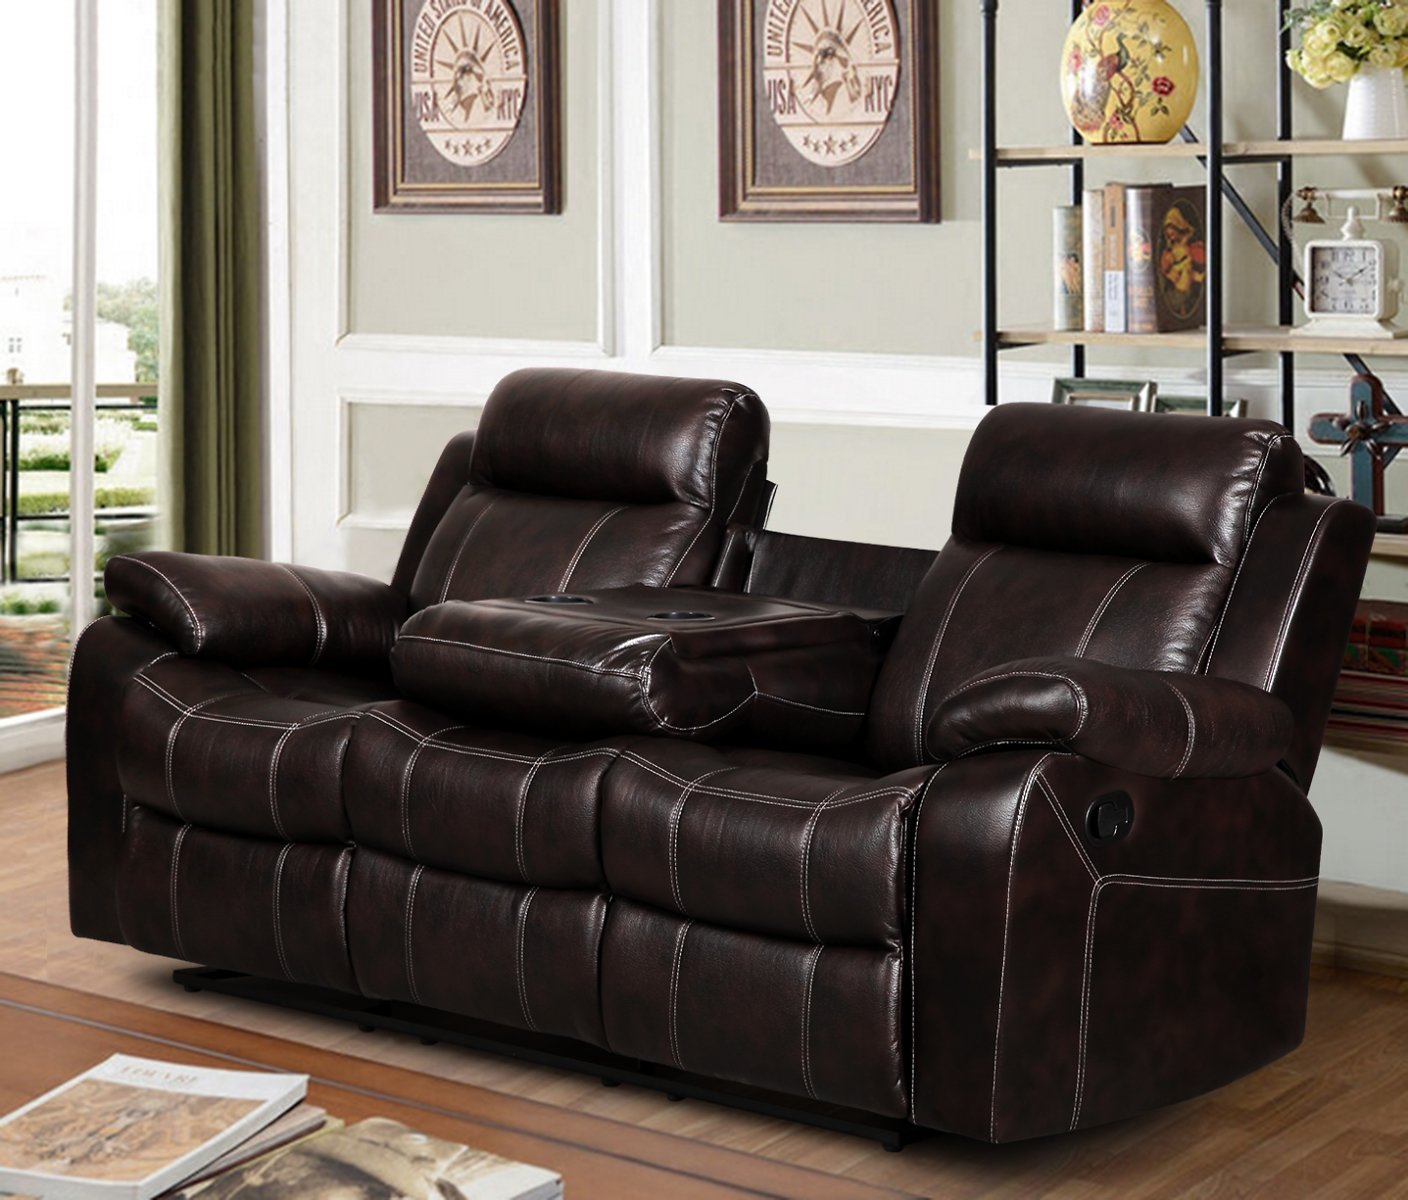 Dark Brown Leather Air Reclining Sofa with Tea Table